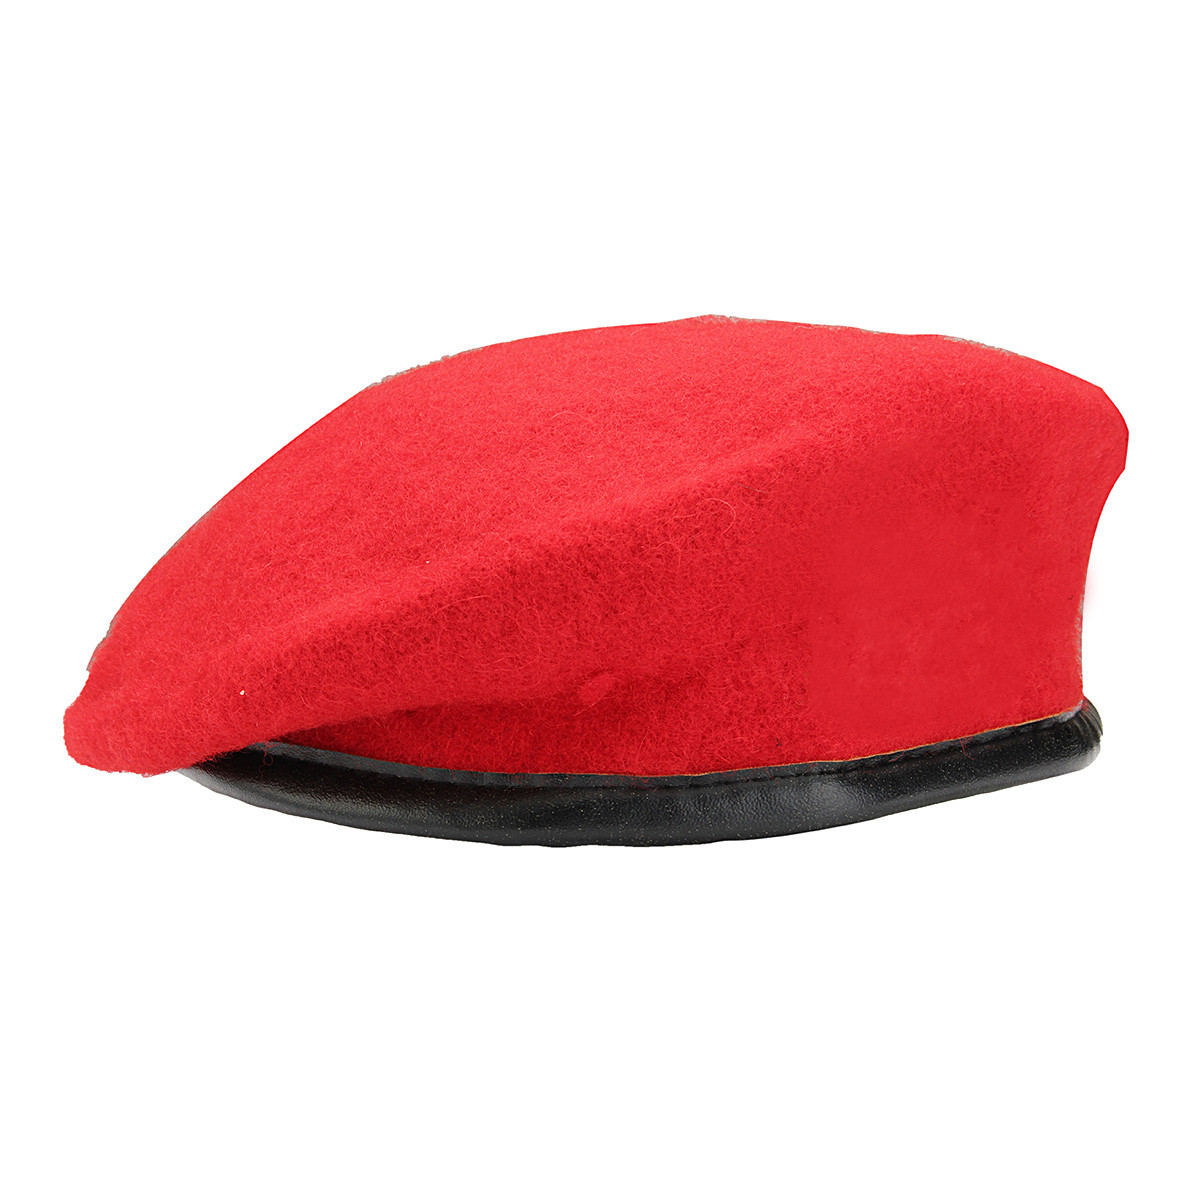 1bf6a1e19a5 Men women mix wool military special force army french artist hat cap jpg  1200x1200 French artist